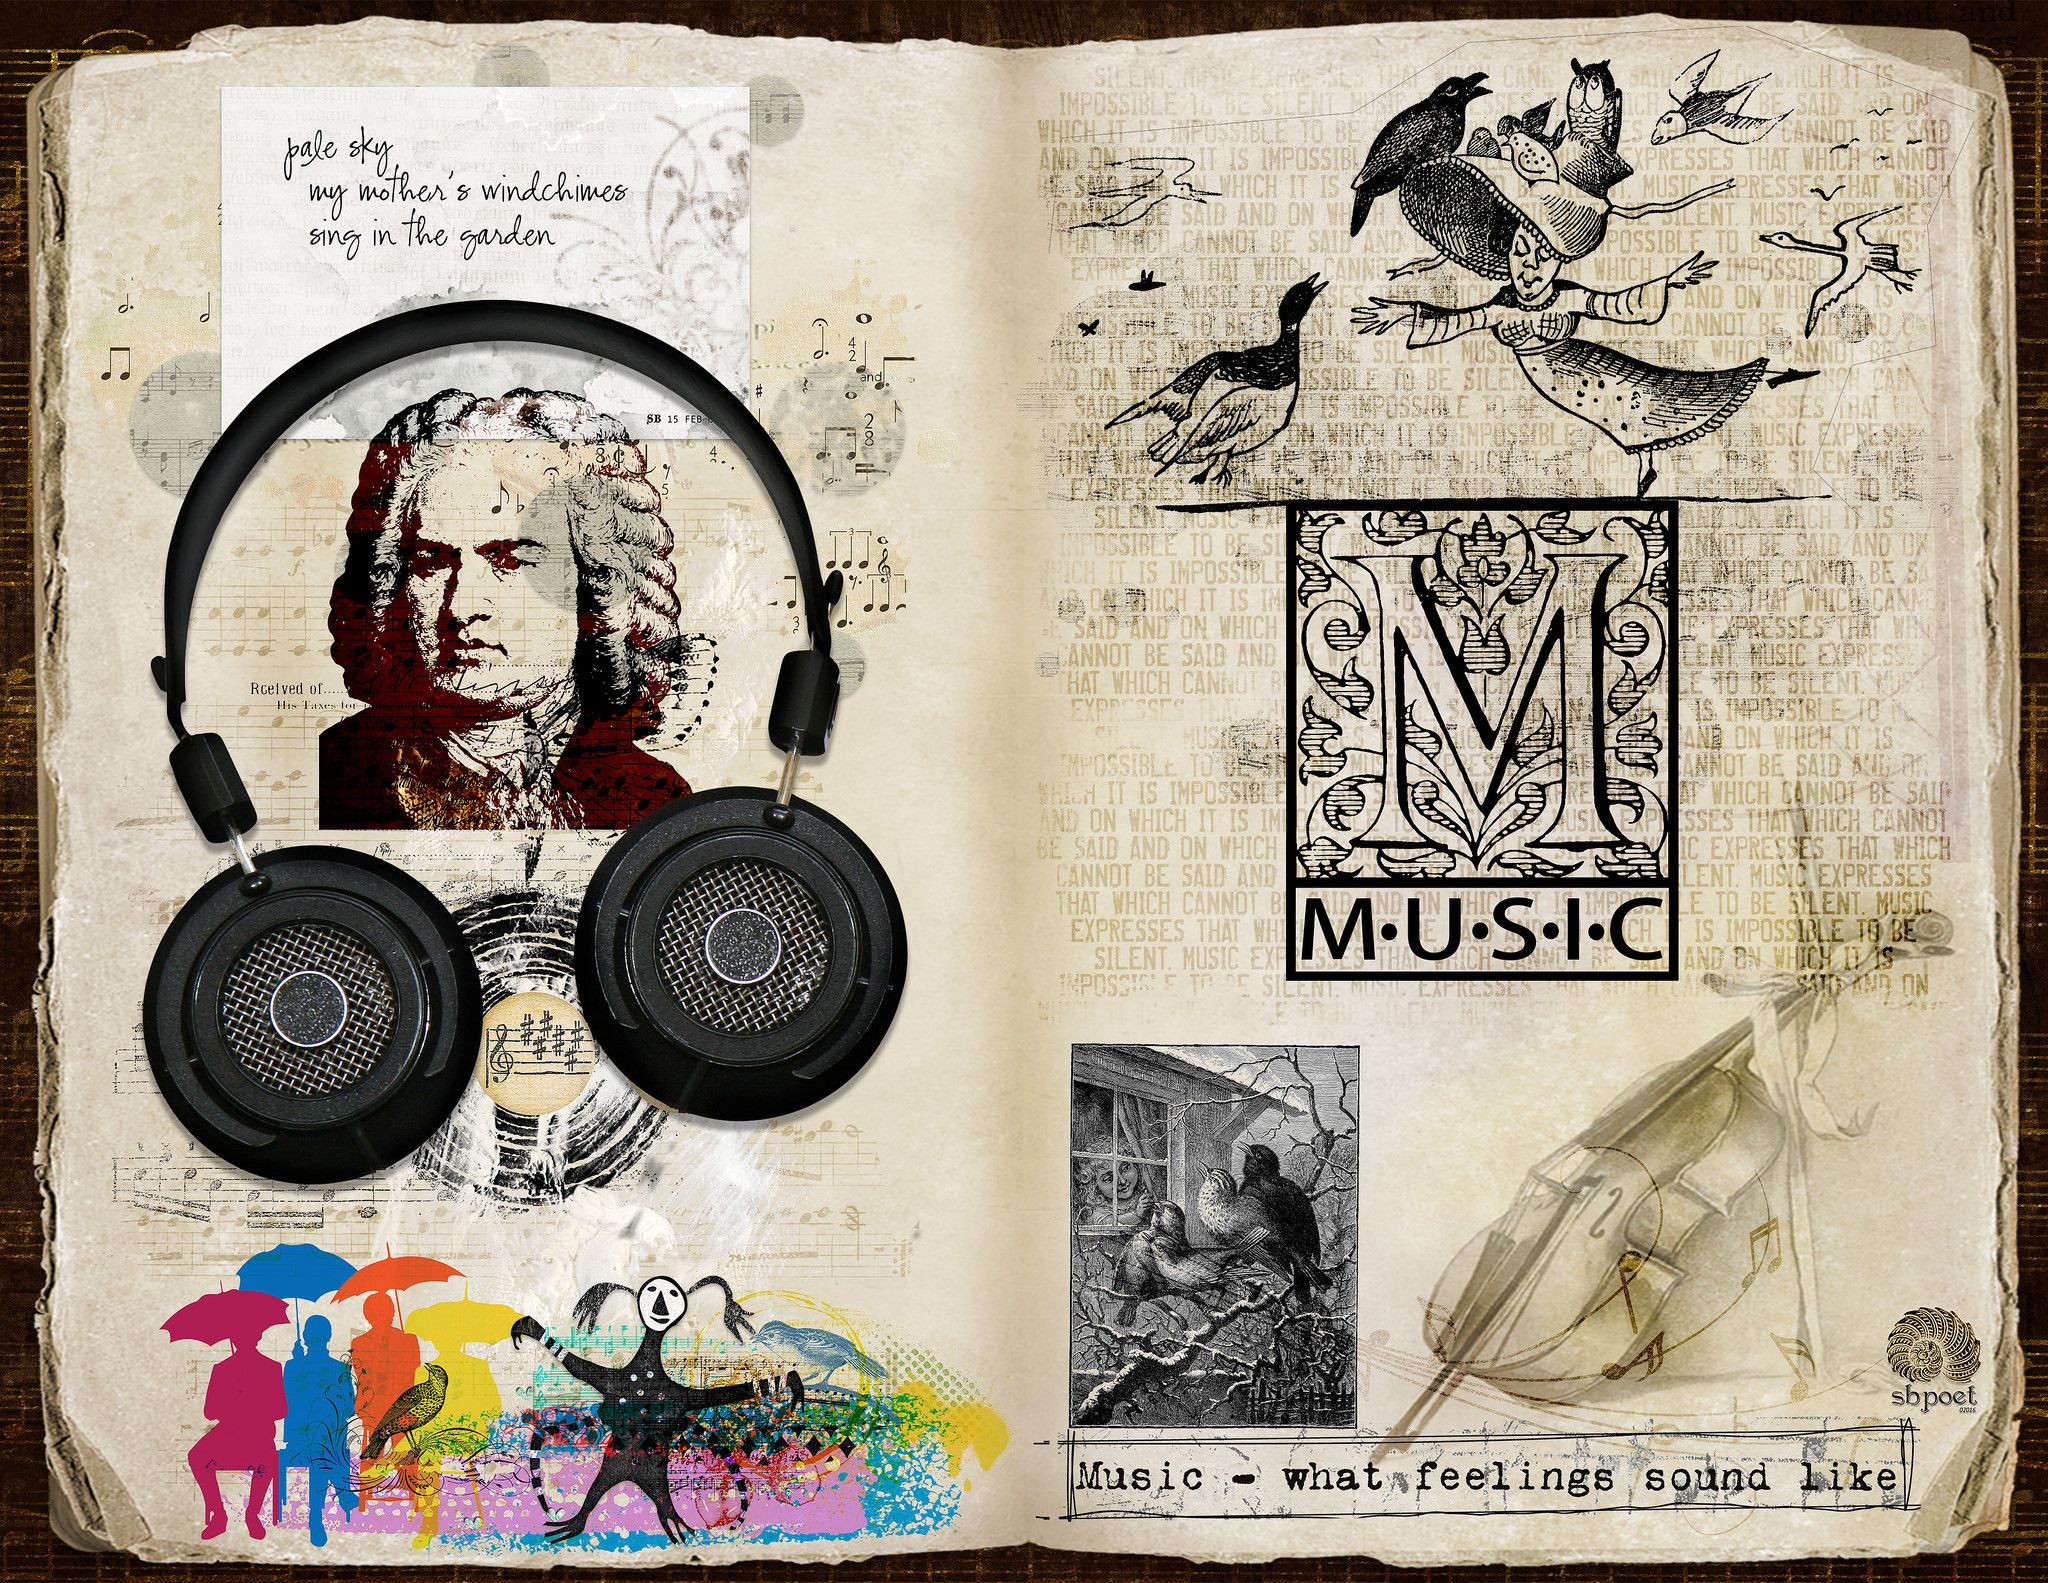 https://flic.kr/p/Pao1GU | [GRATITUDE] MUSIC & SOUND |   Am I doing well? Yes? I must be listening to music. Am I doing poorly? I need to listen to music!  For 30 Days of Gratitude, an art journaling challenge at The Lilypad. Elements from Irene Alexeeva, Quirky Heart, Antique Images, Vicki Robinson, Tangie Baxter, Paula Kesselring, Manu, RoseyPosey, Laitha, manishmansinh, Rebecca McMeen, Anna Aspnes, TlcCreations, and Ali Edwards. #artjournal #digitalartjournaling #digitalart #the_lilypad